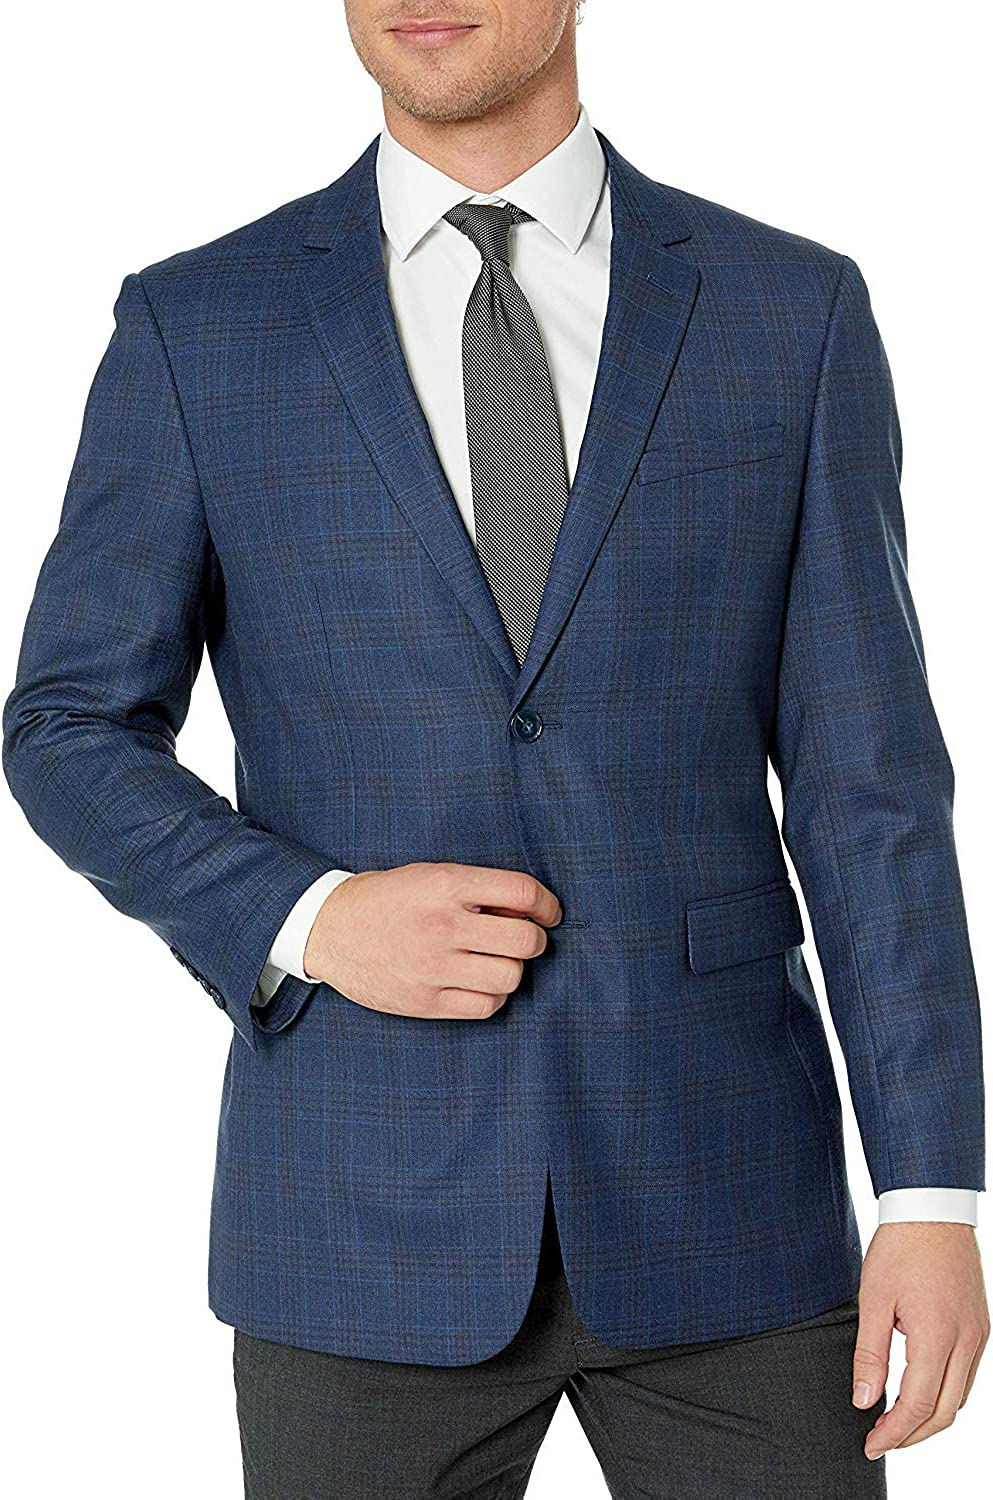 Adam Baker Men's Single Breasted 100% Wool Ultra Slim Fit Blazer/Sport Coat - Many Styles and Colors